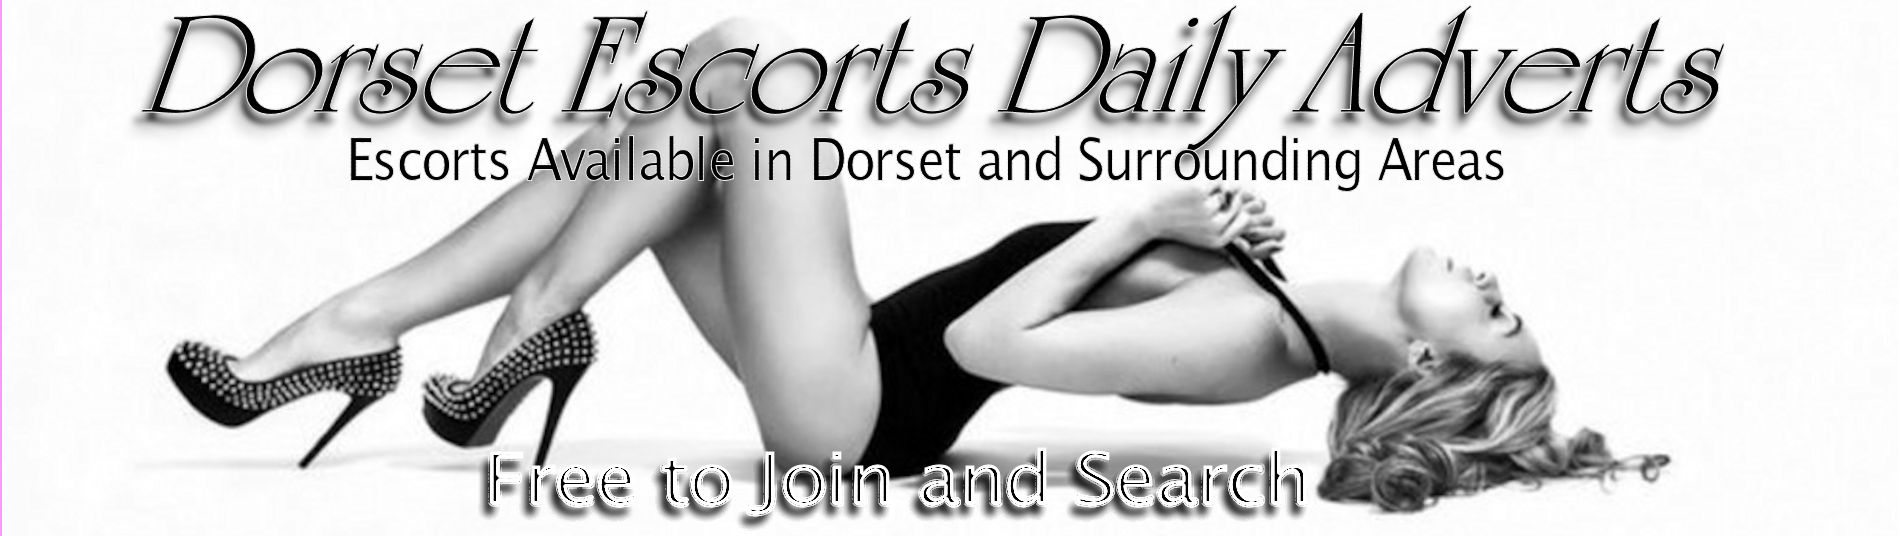 Image: Dorset Escorts Daily Adverts